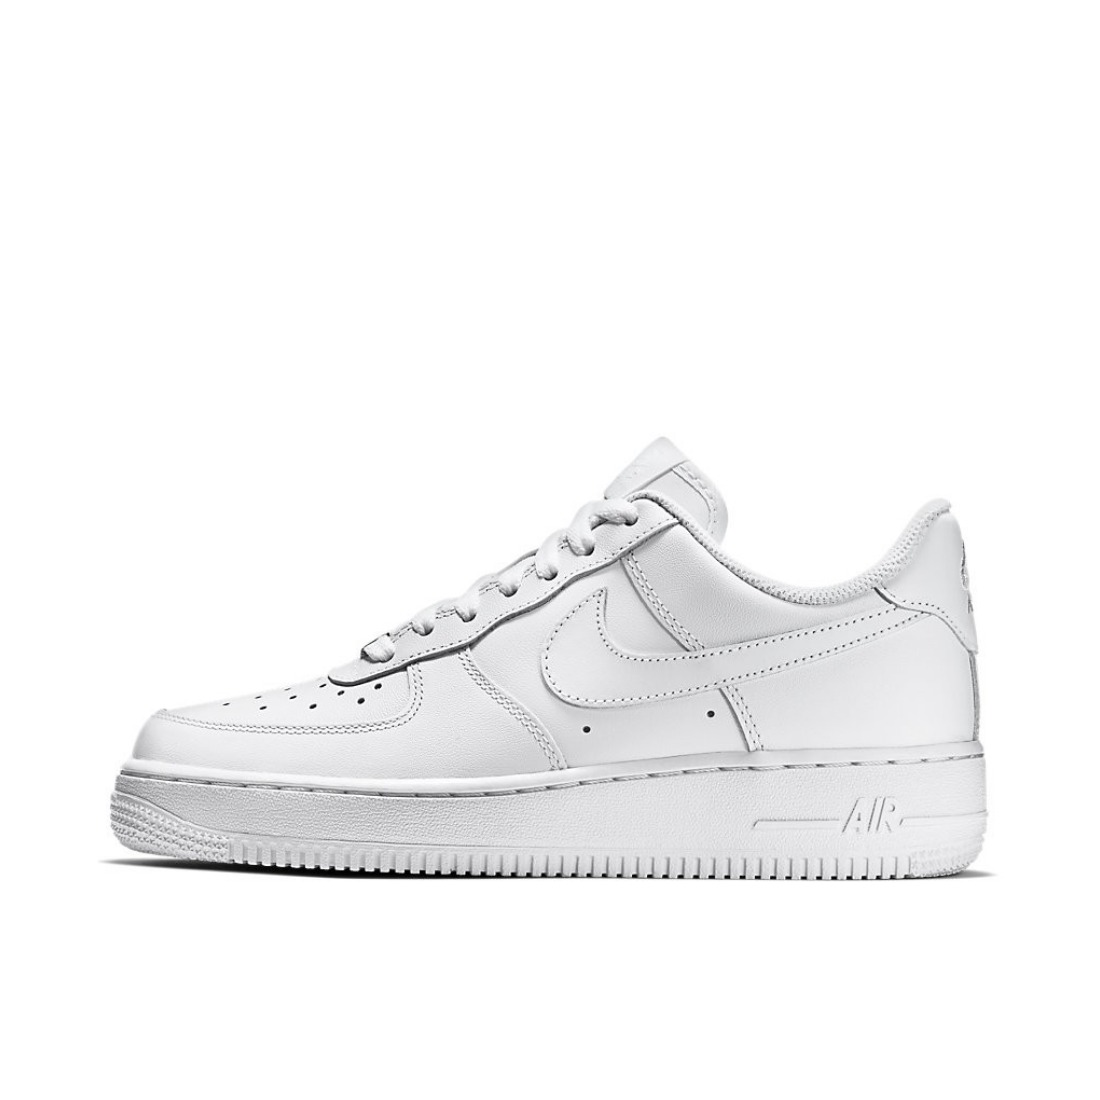 Nike Air Force 1 Low White 纯白经典 实付到手749元